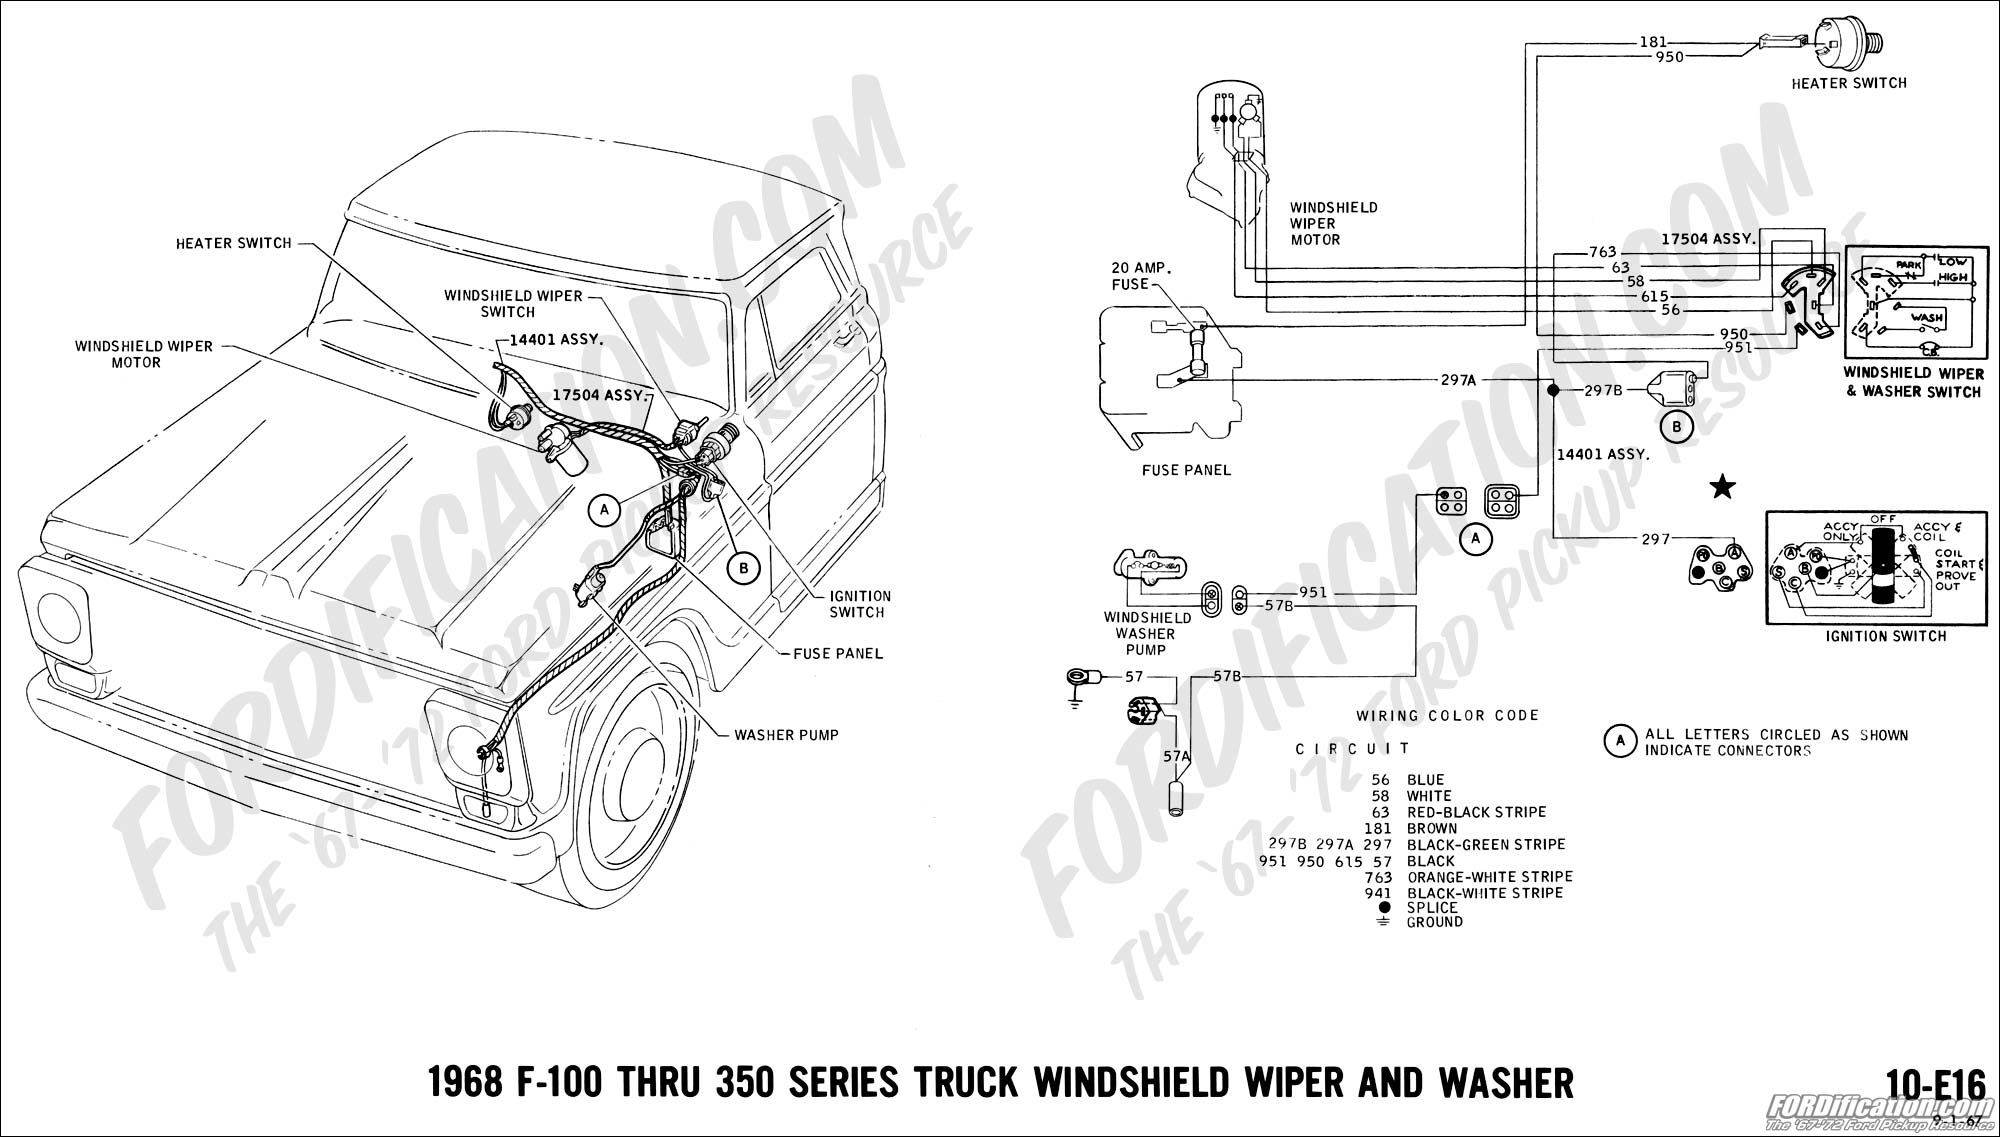 86 Ranger Wiring Schematic Library Ford Alternator Diagram 2010 Fuse 1968 F 100 Thru 350 Windshield Wiper And Washer